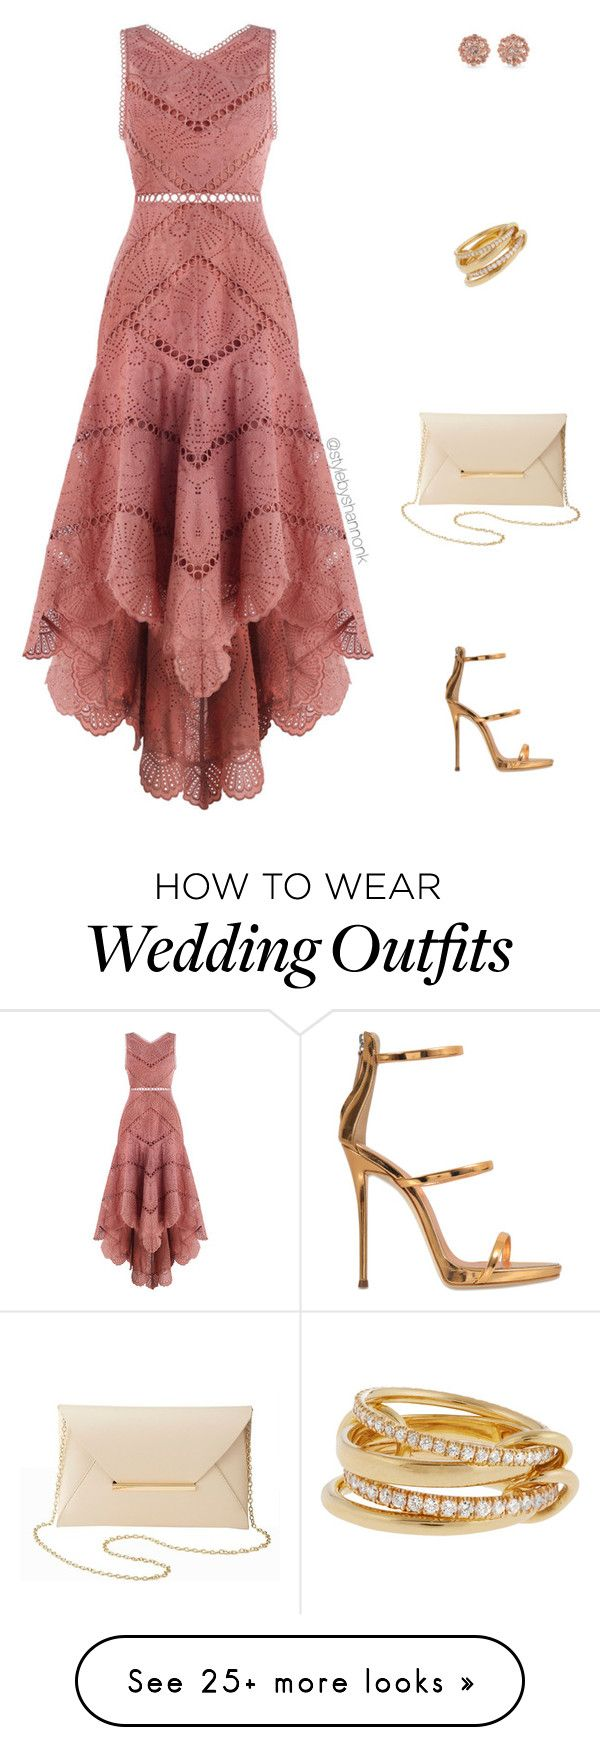 """Wedding Guest"" by stylebyshannonk on Polyvore featuring Zimmermann, Giuseppe Zanotti, Charlotte Russe, SPINELLI KILCOLLIN and Carolee"